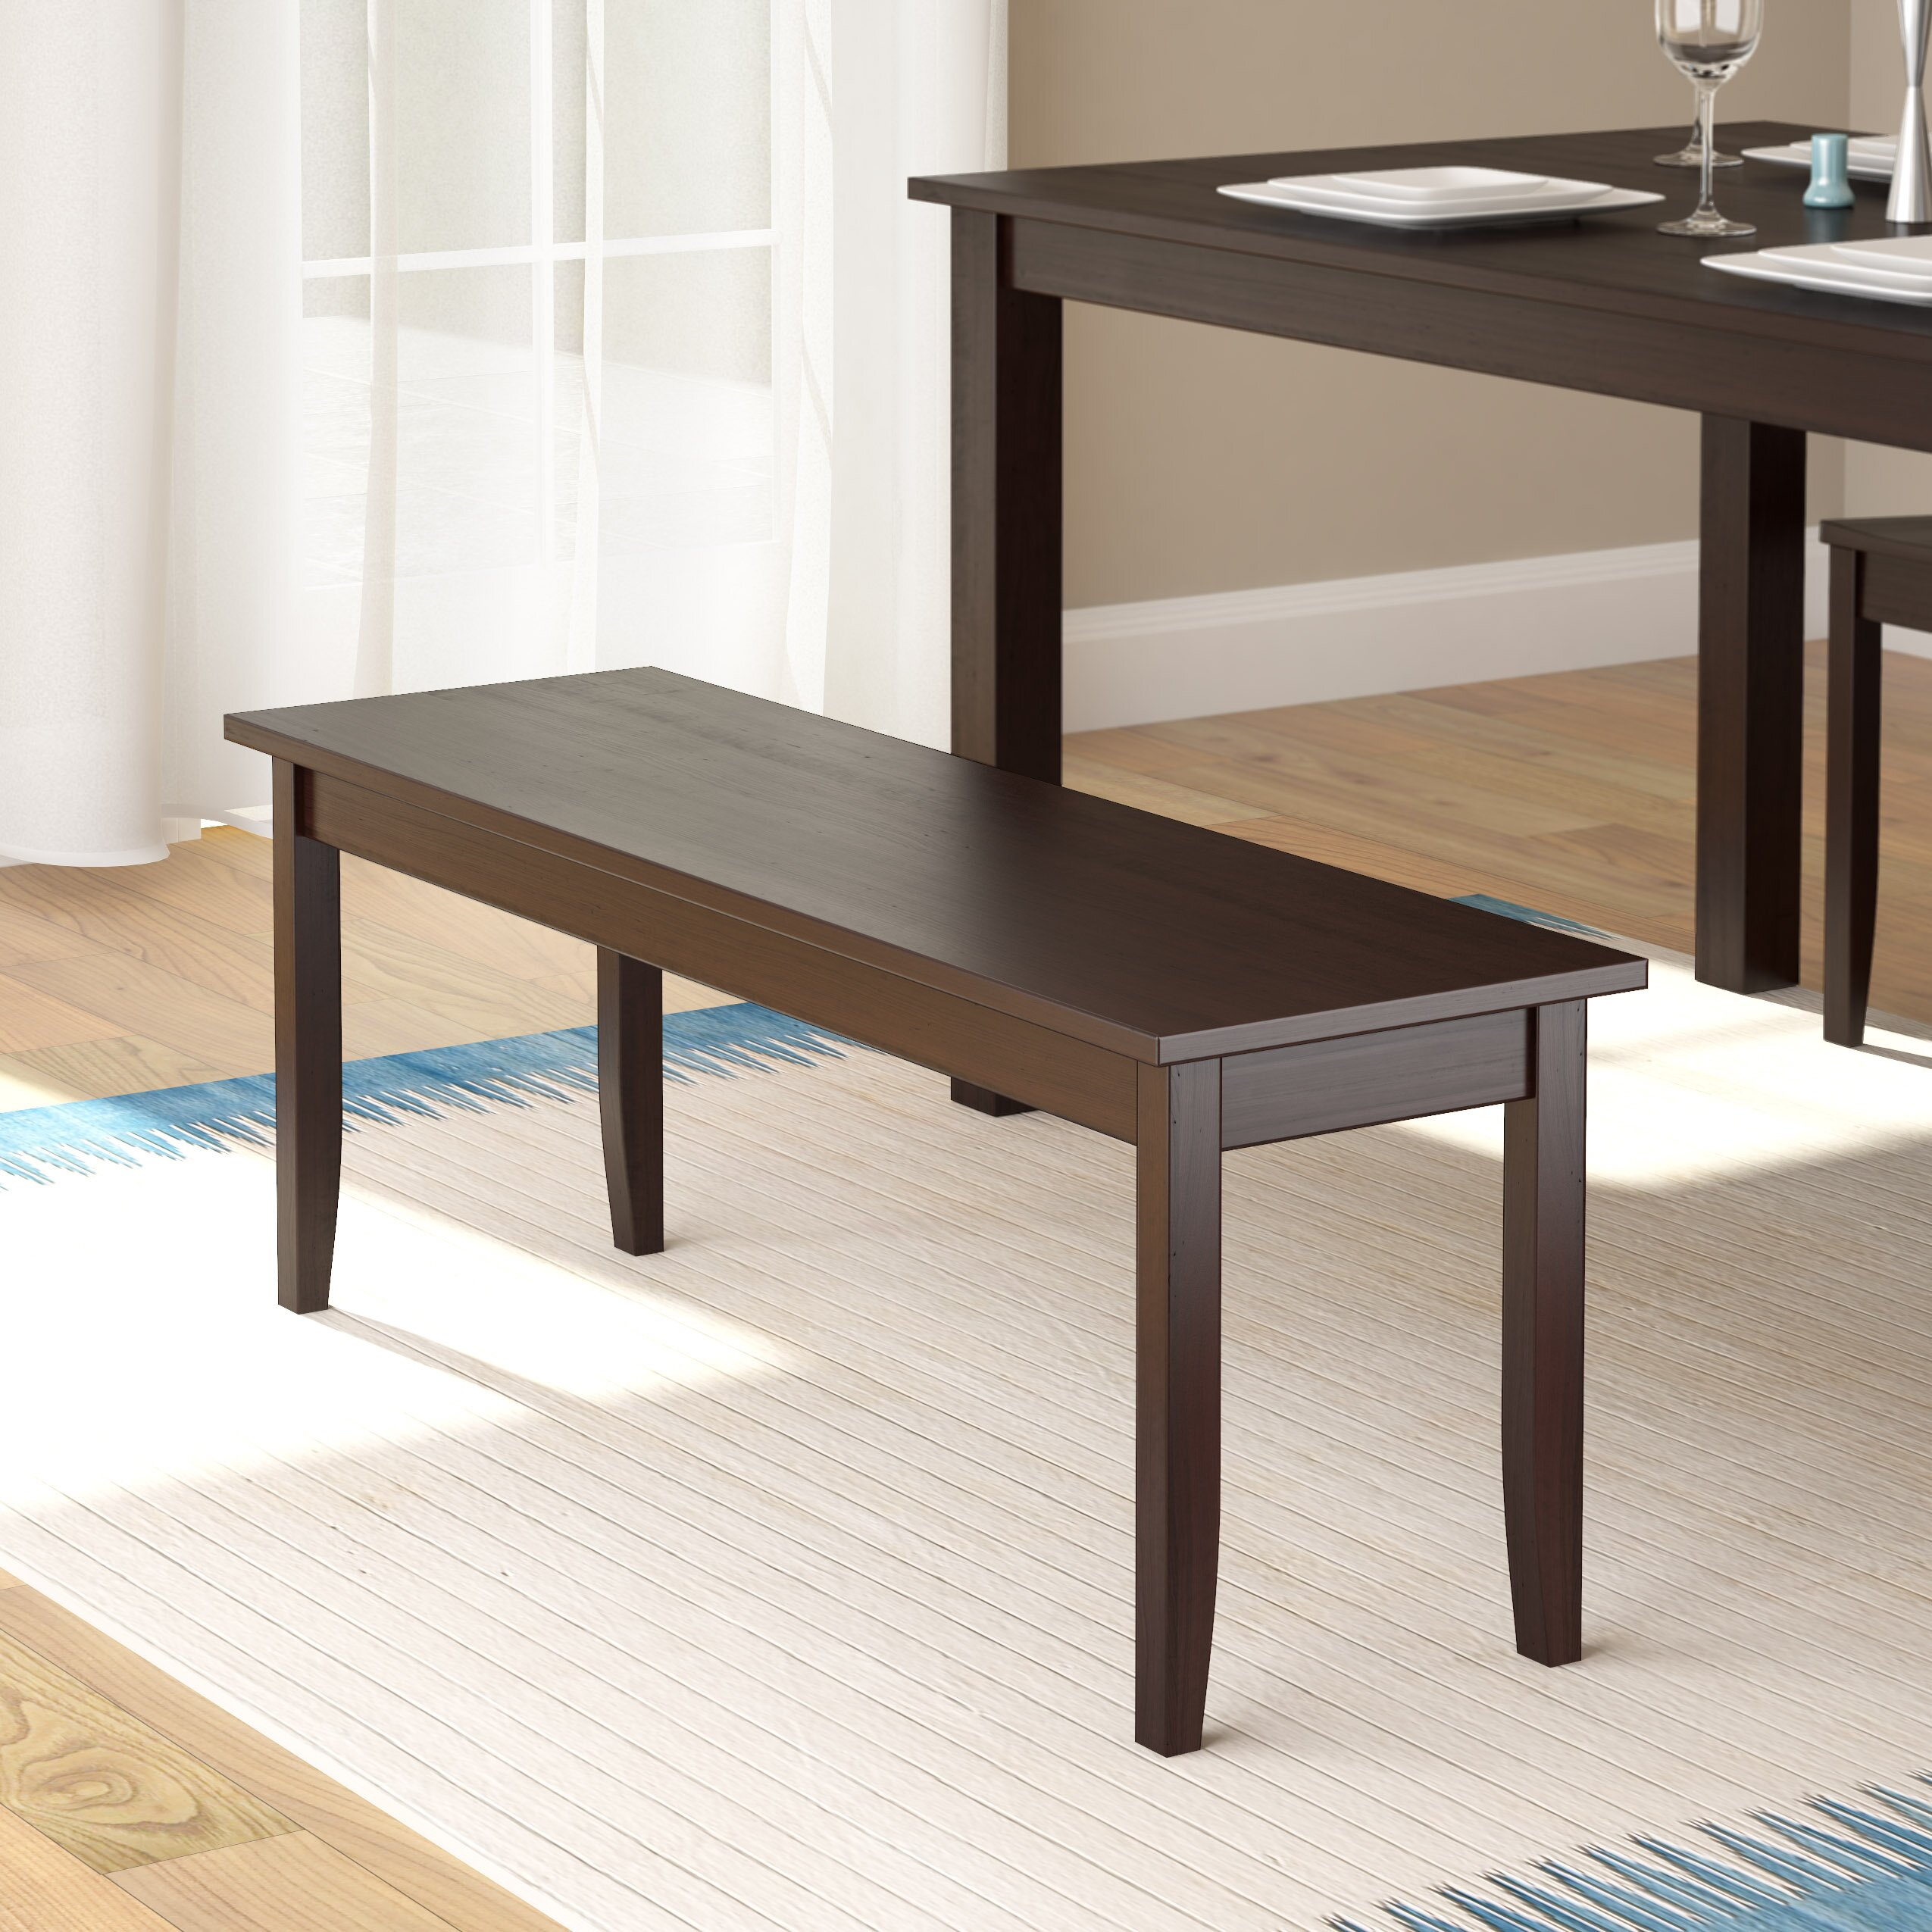 DCOR Design Atwood Kitchen Bench & Reviews